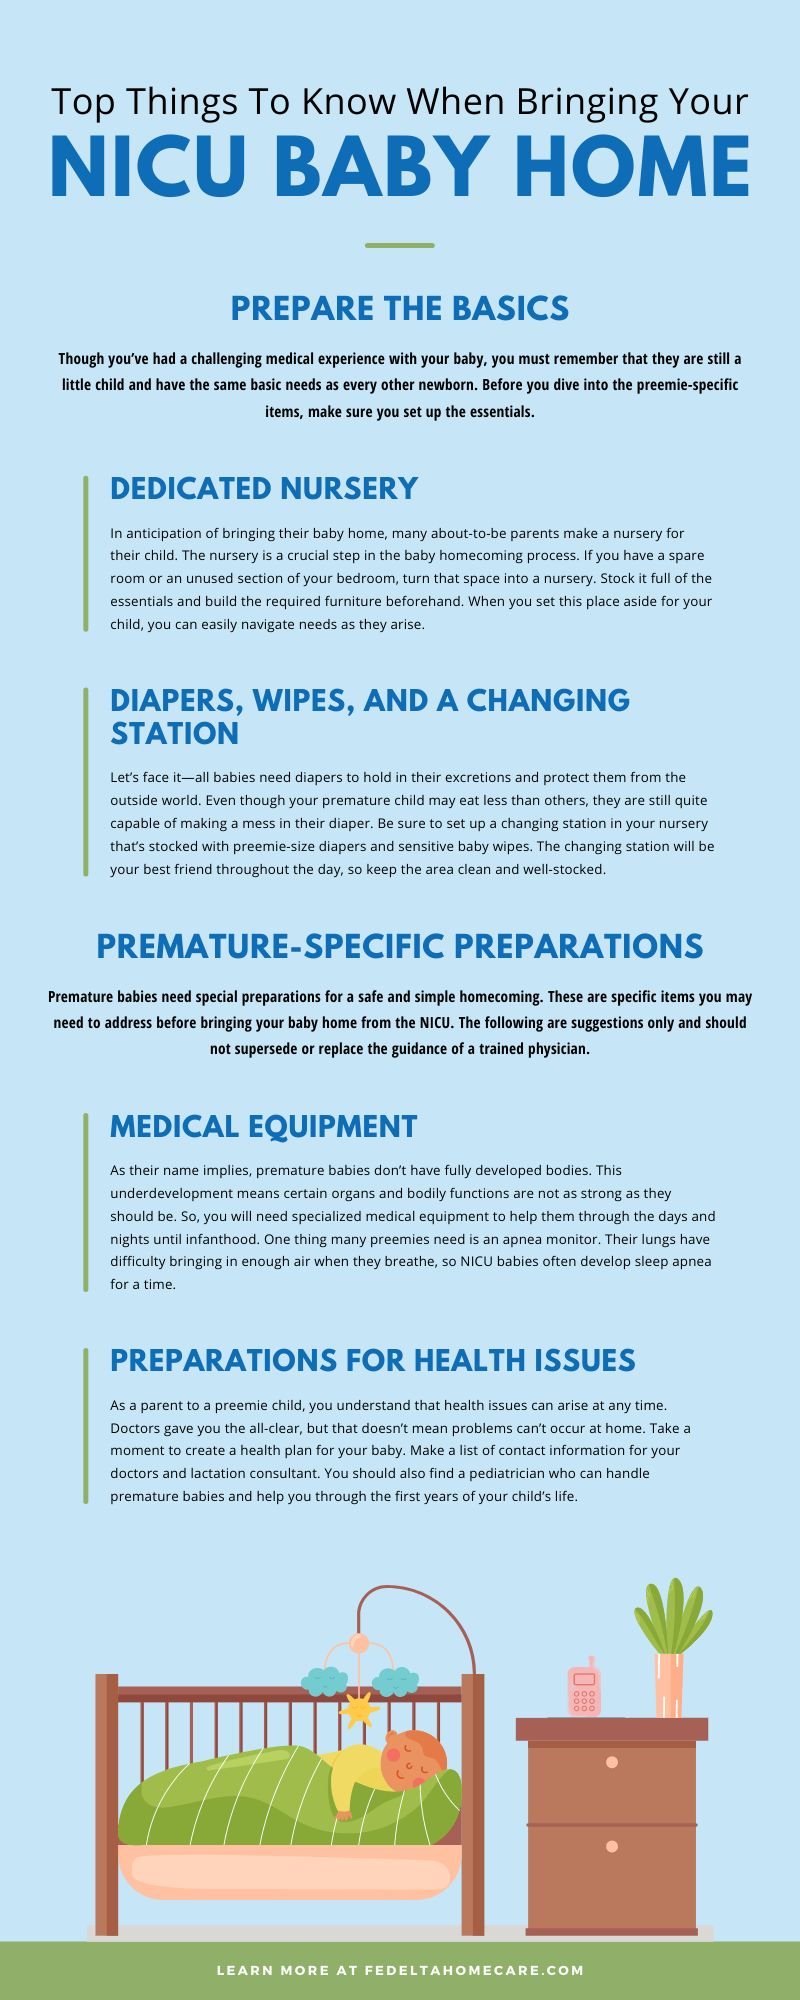 Top Things To Know When Bringing Your NICU Baby Home